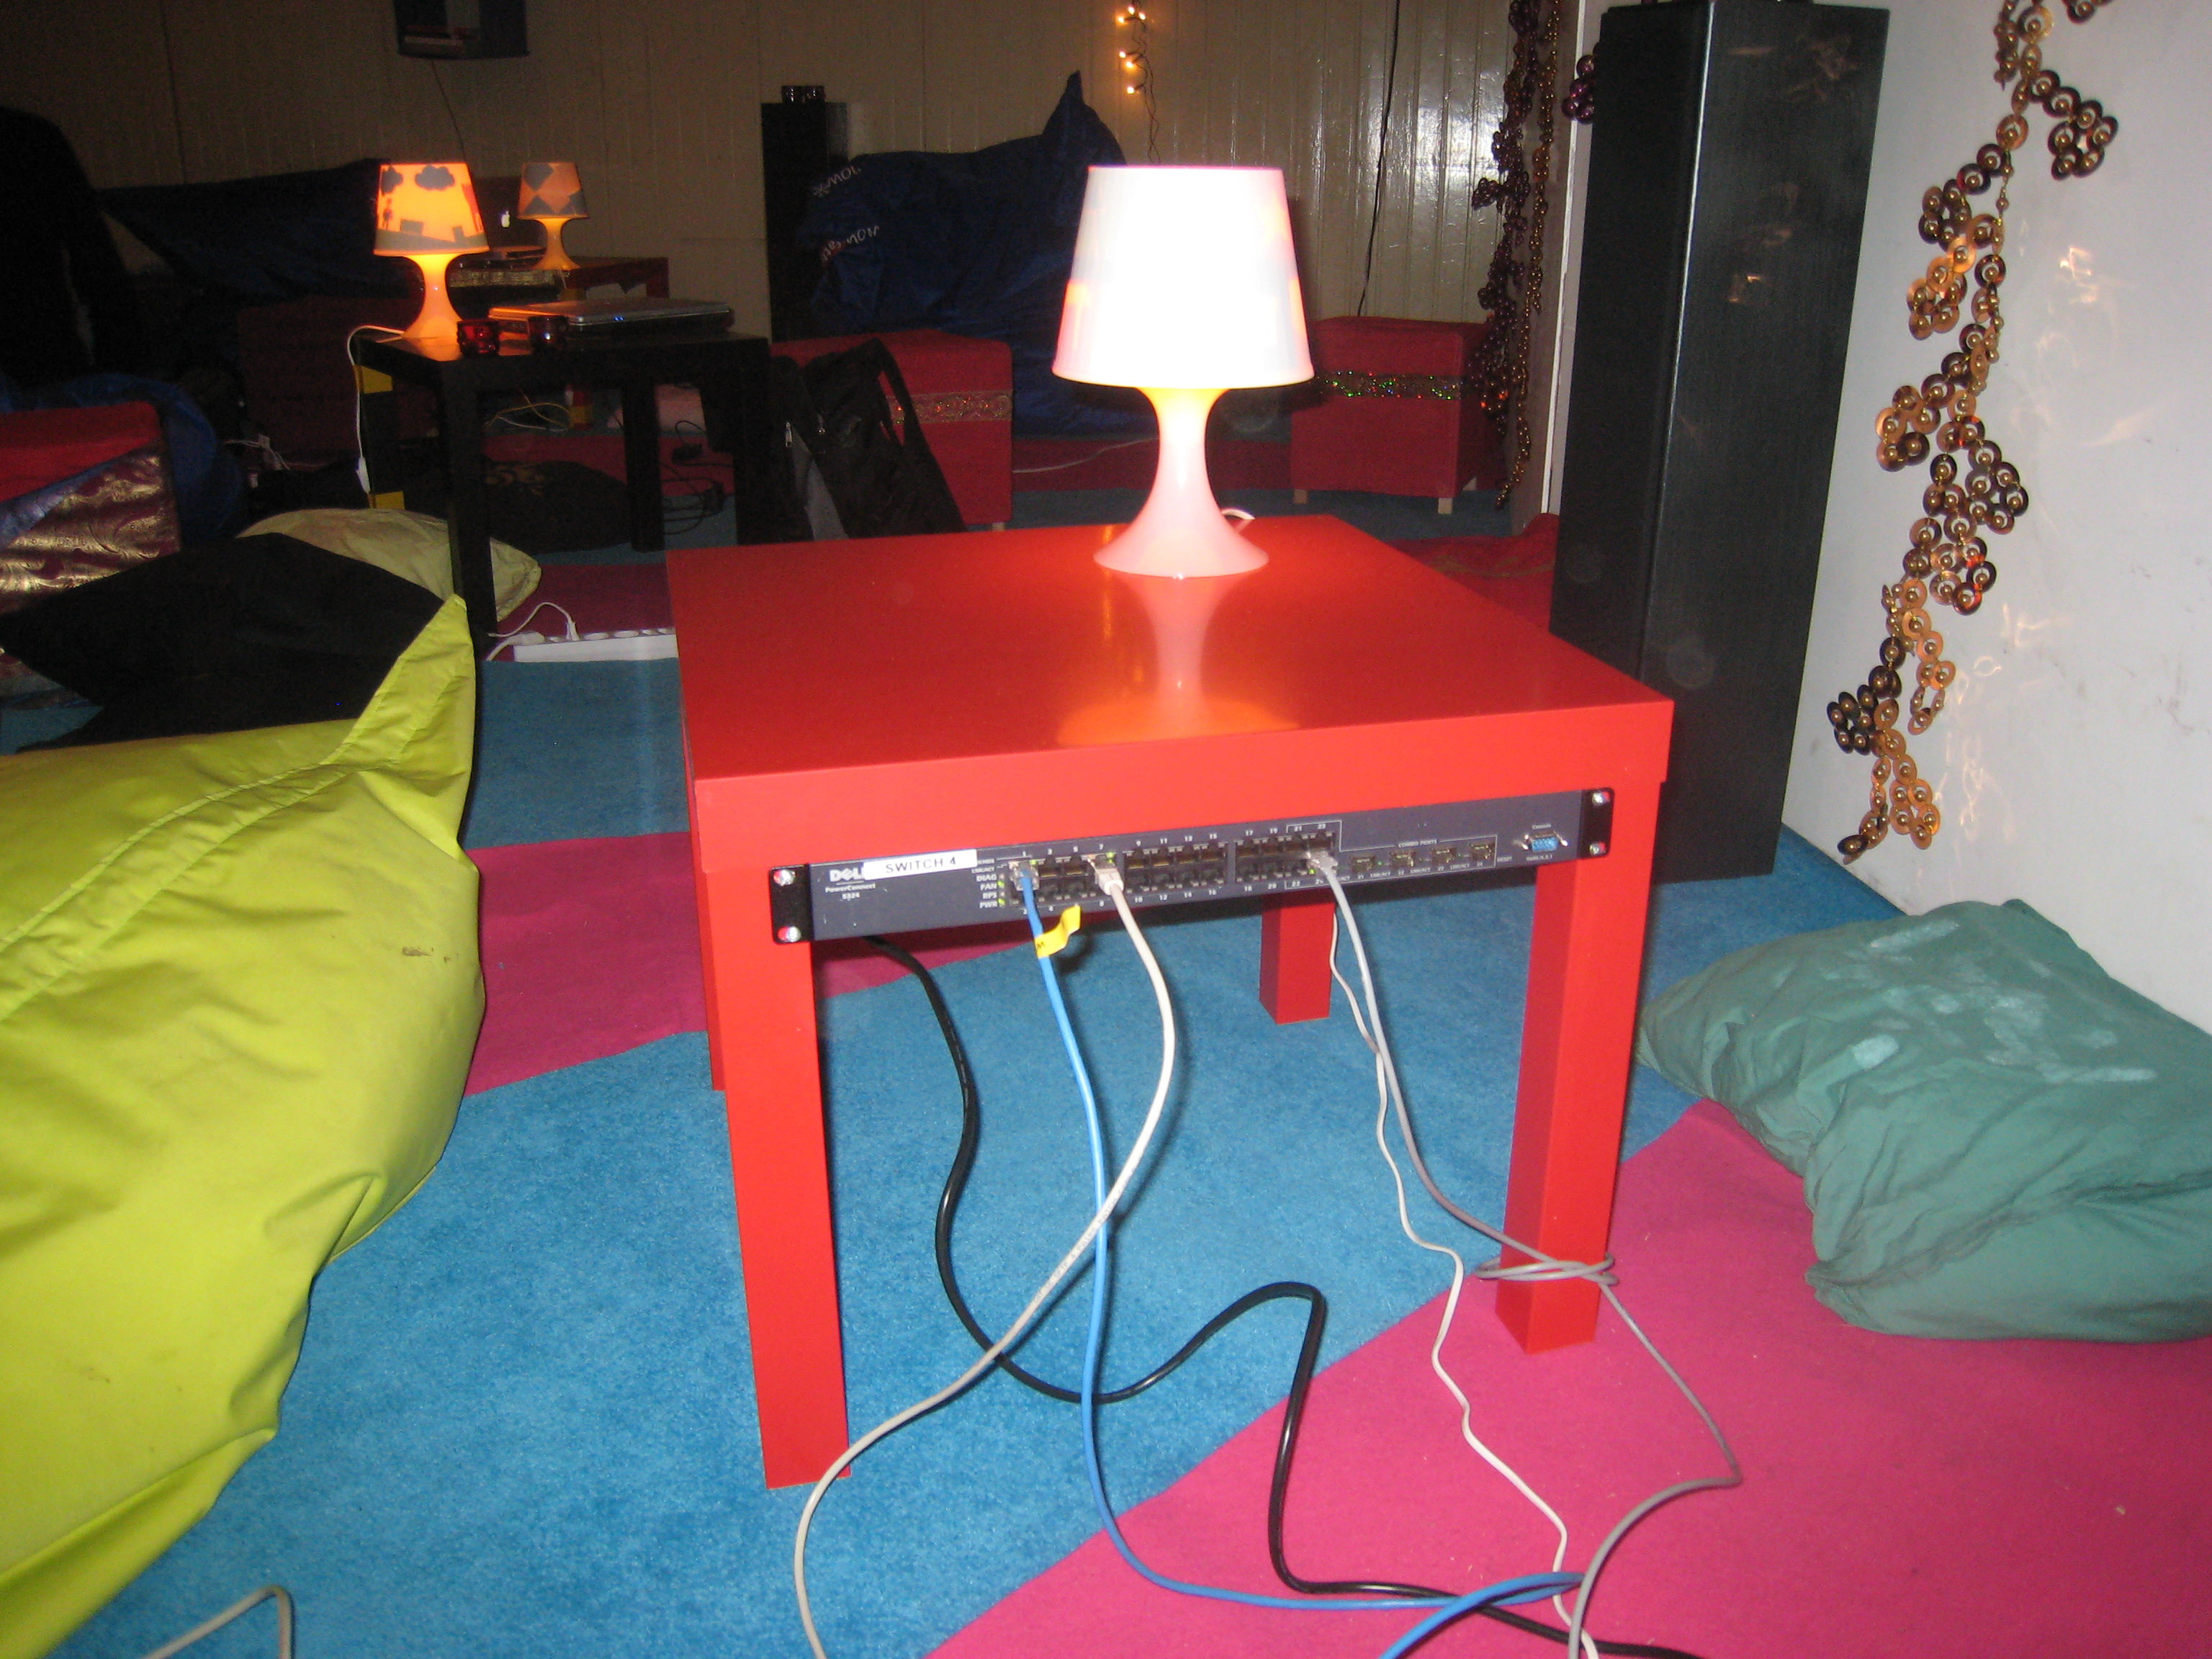 A red LACK side-table with a small white lamp sitting on top of it and a network switch mounted to the underside.